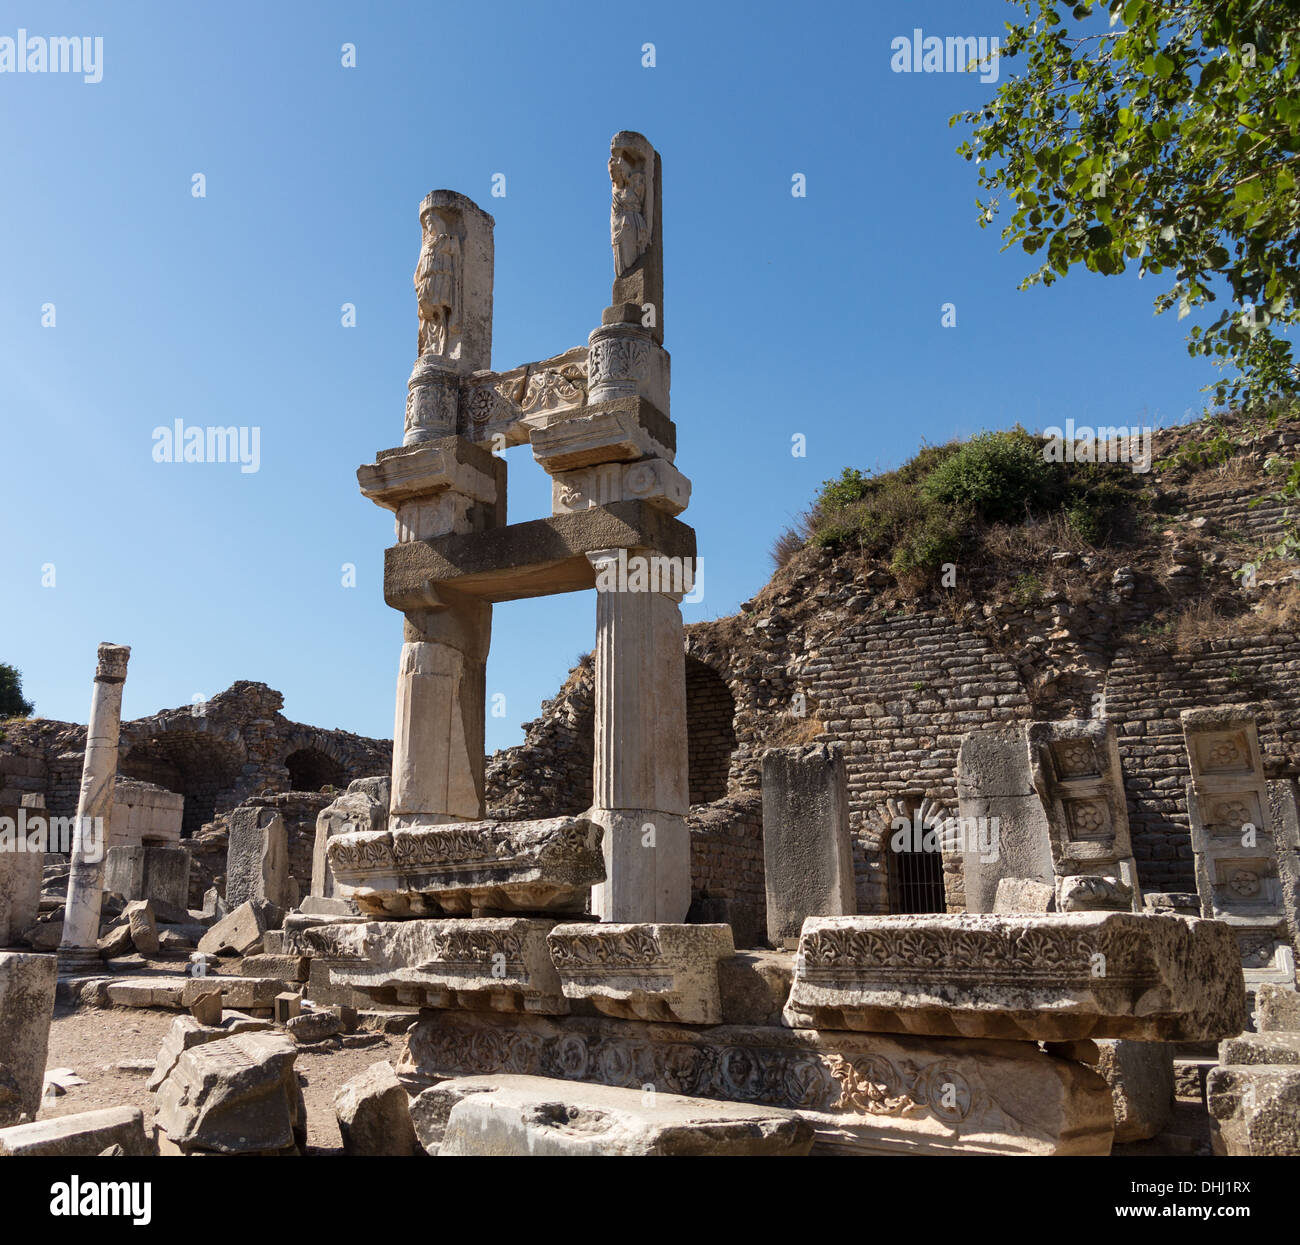 Ruins of the buildings / temples in old city of Ephesus which was a famous Ancient Greek city now in Turkey - Stock Image